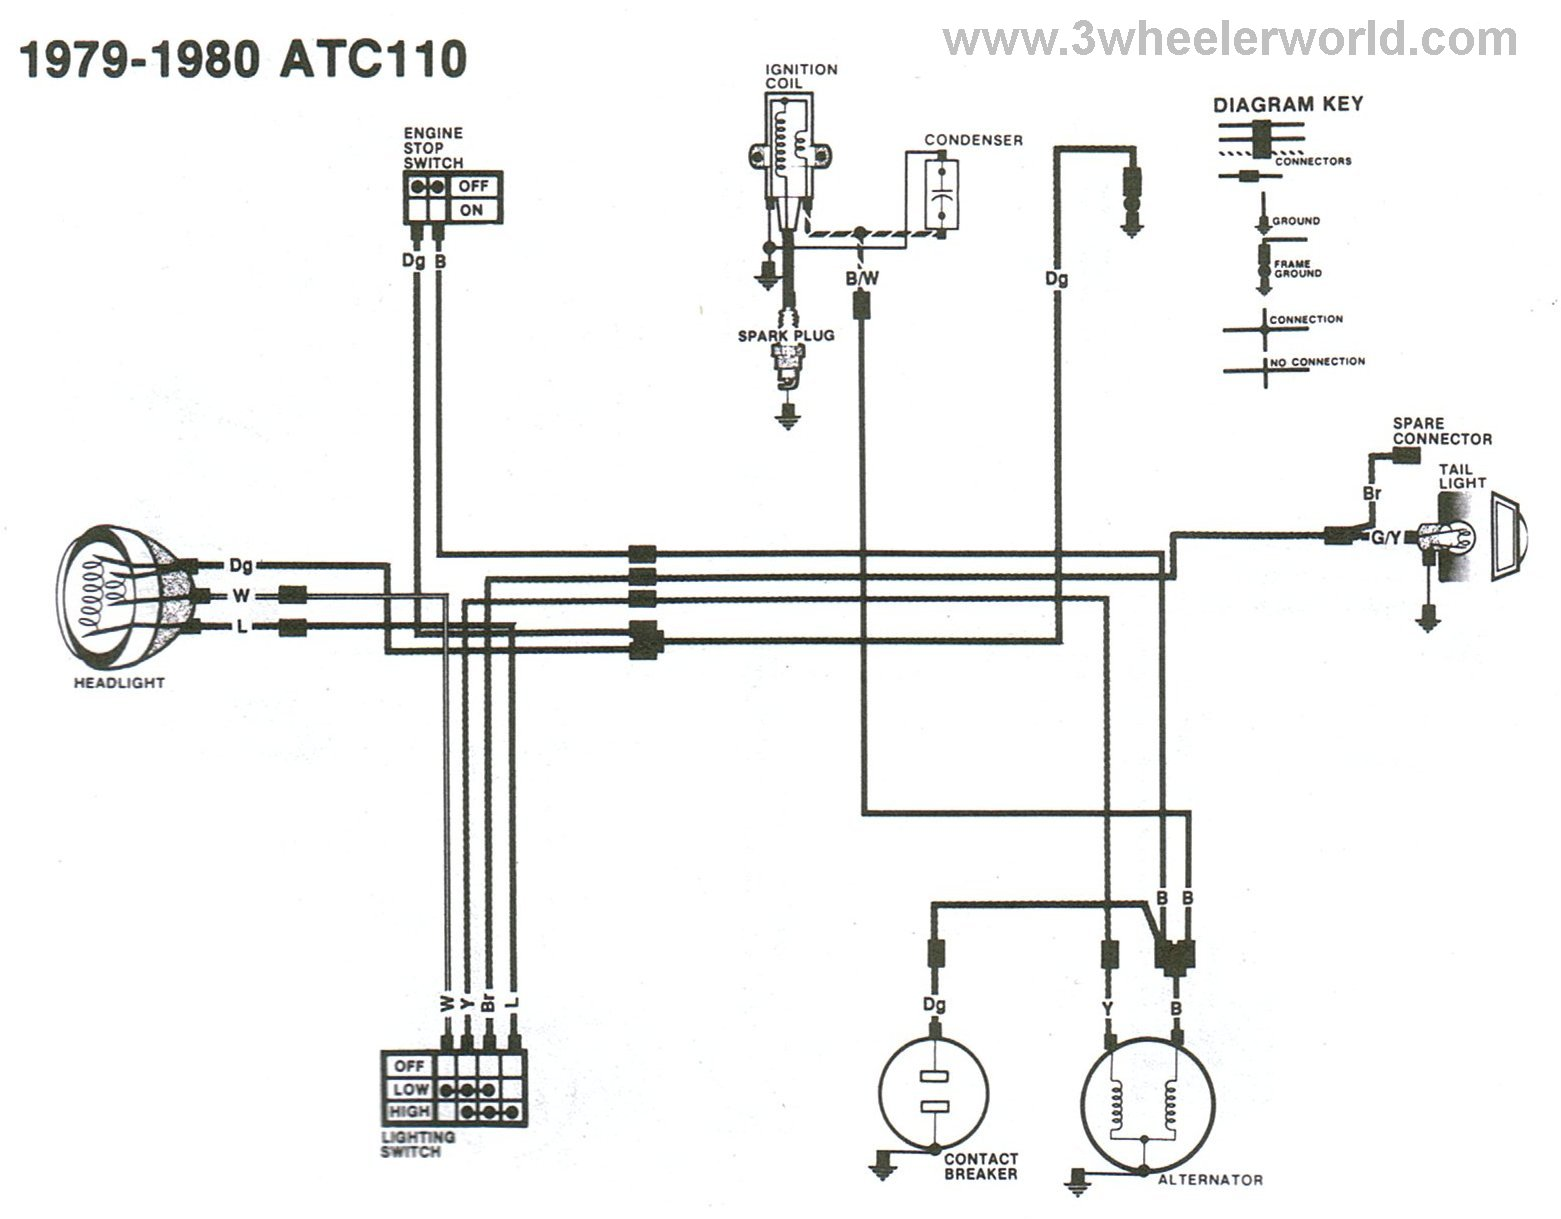 ATC110x79Thru80 3 wheeler world tech help honda wiring diagrams 400ex wiring diagram at crackthecode.co